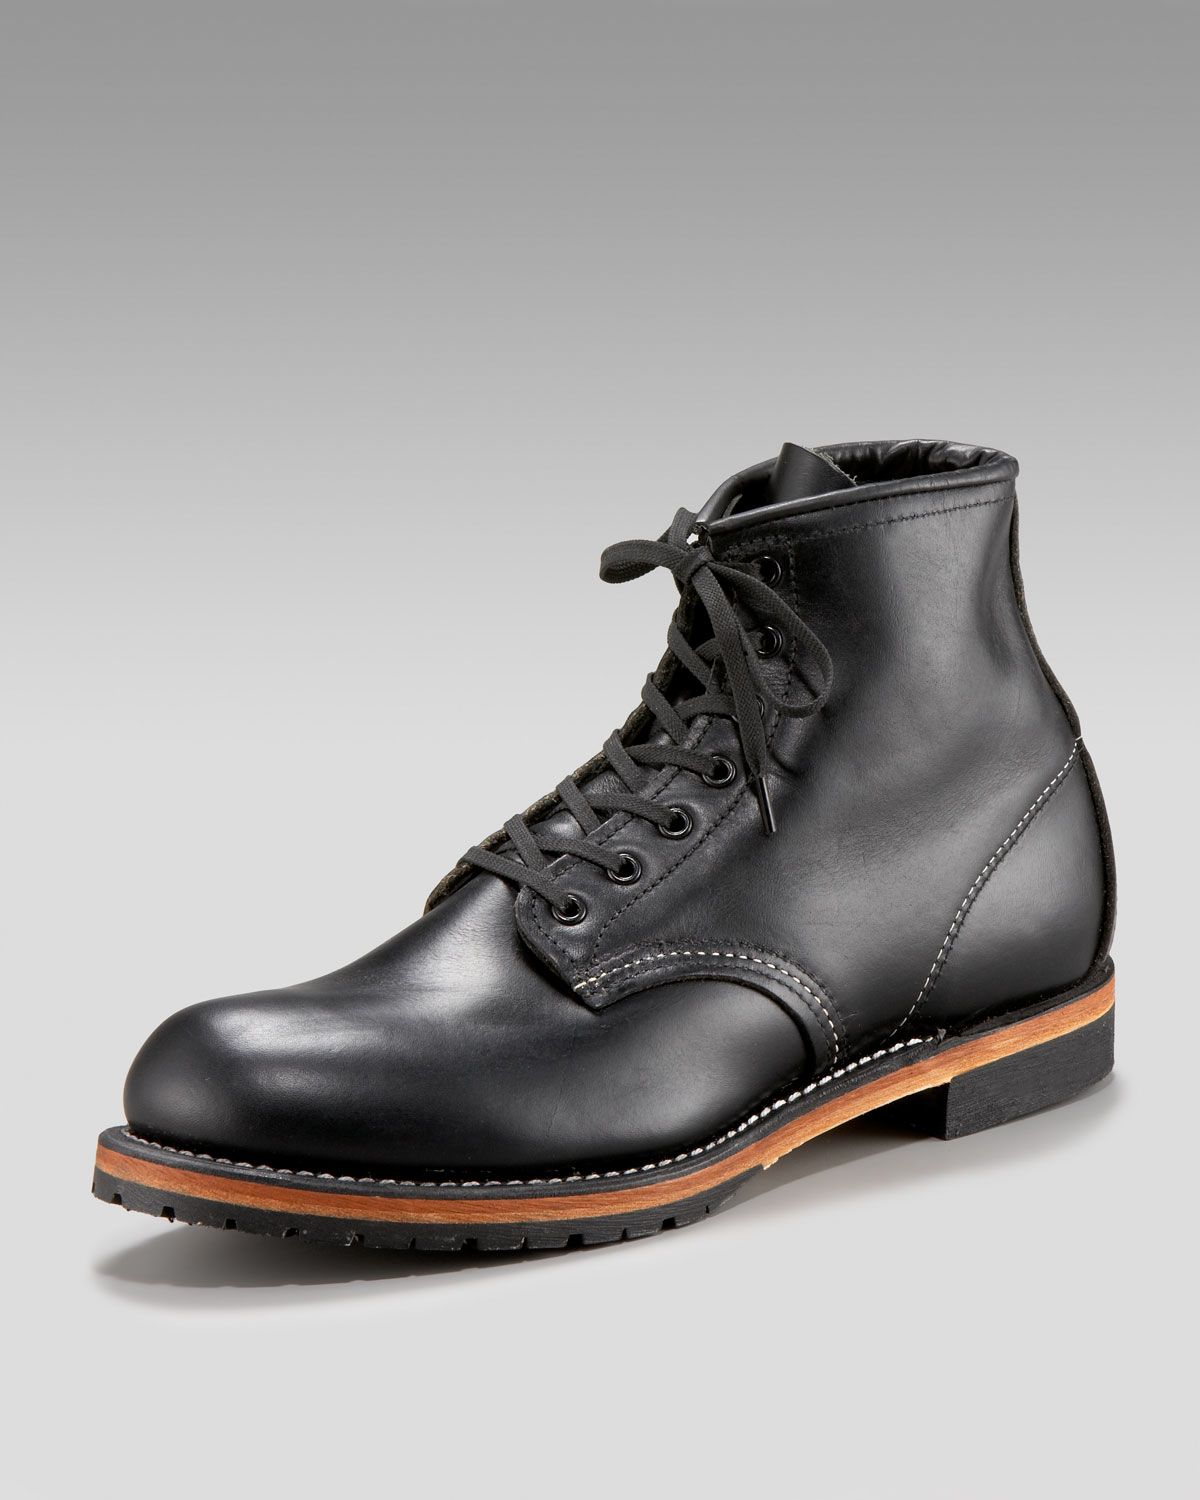 Red Wing Mens Boots - Cr Boot